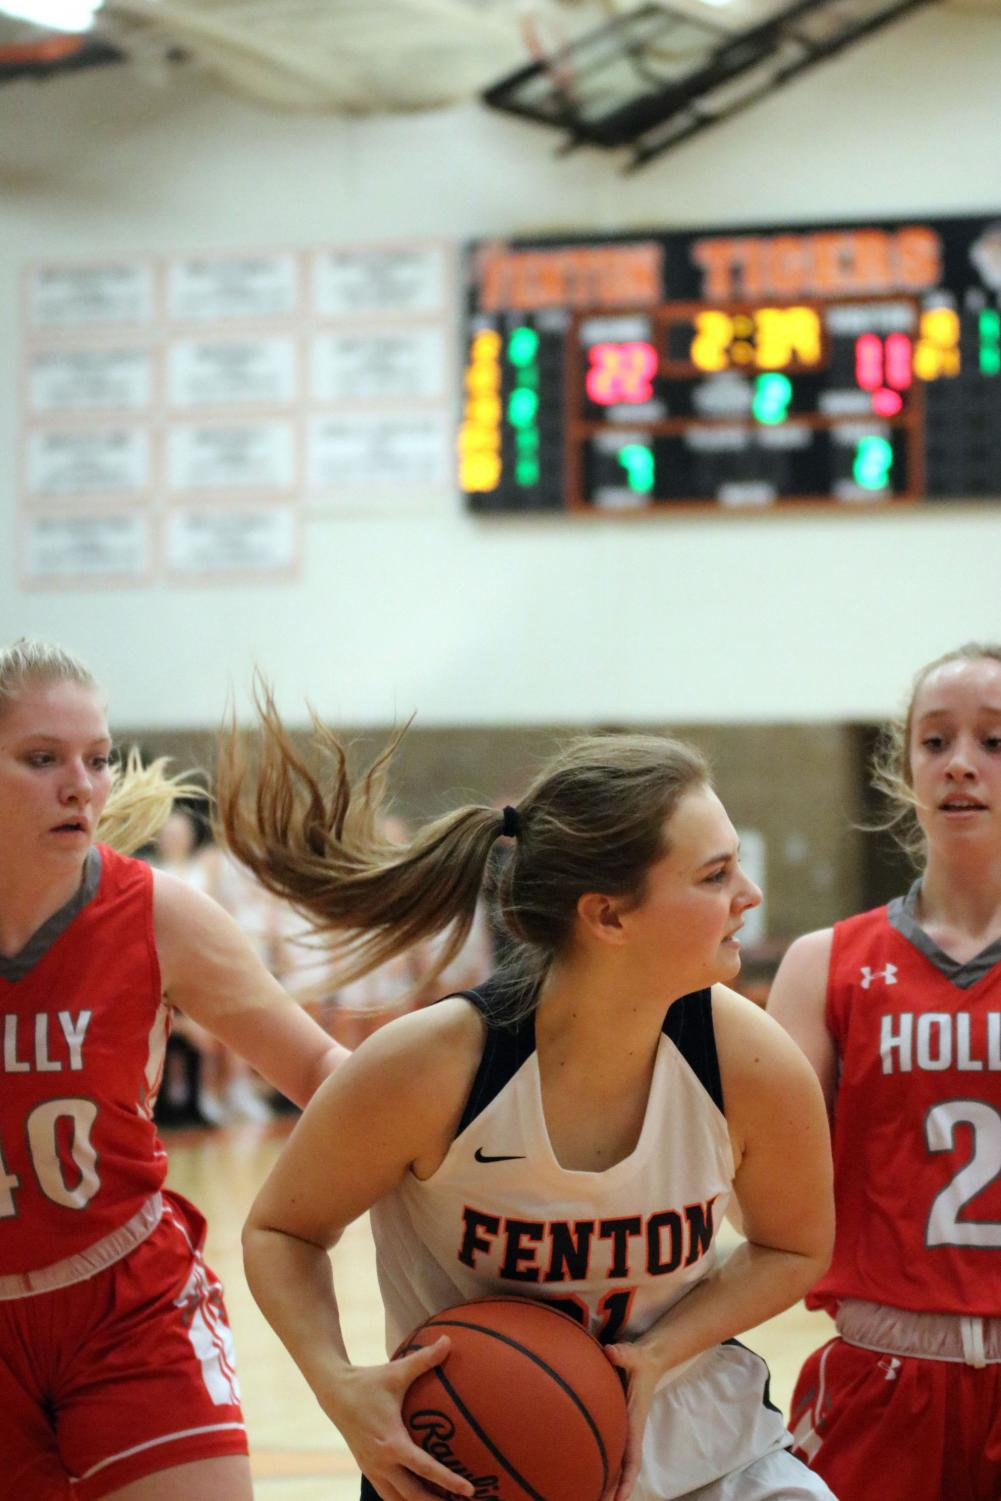 Guarding the ball from her opponents, senior Erica Behnfeldt looks for a teammate to pass to. On Dec. 20, the girls varsity basketball team played Holly at home, winning 50-44.